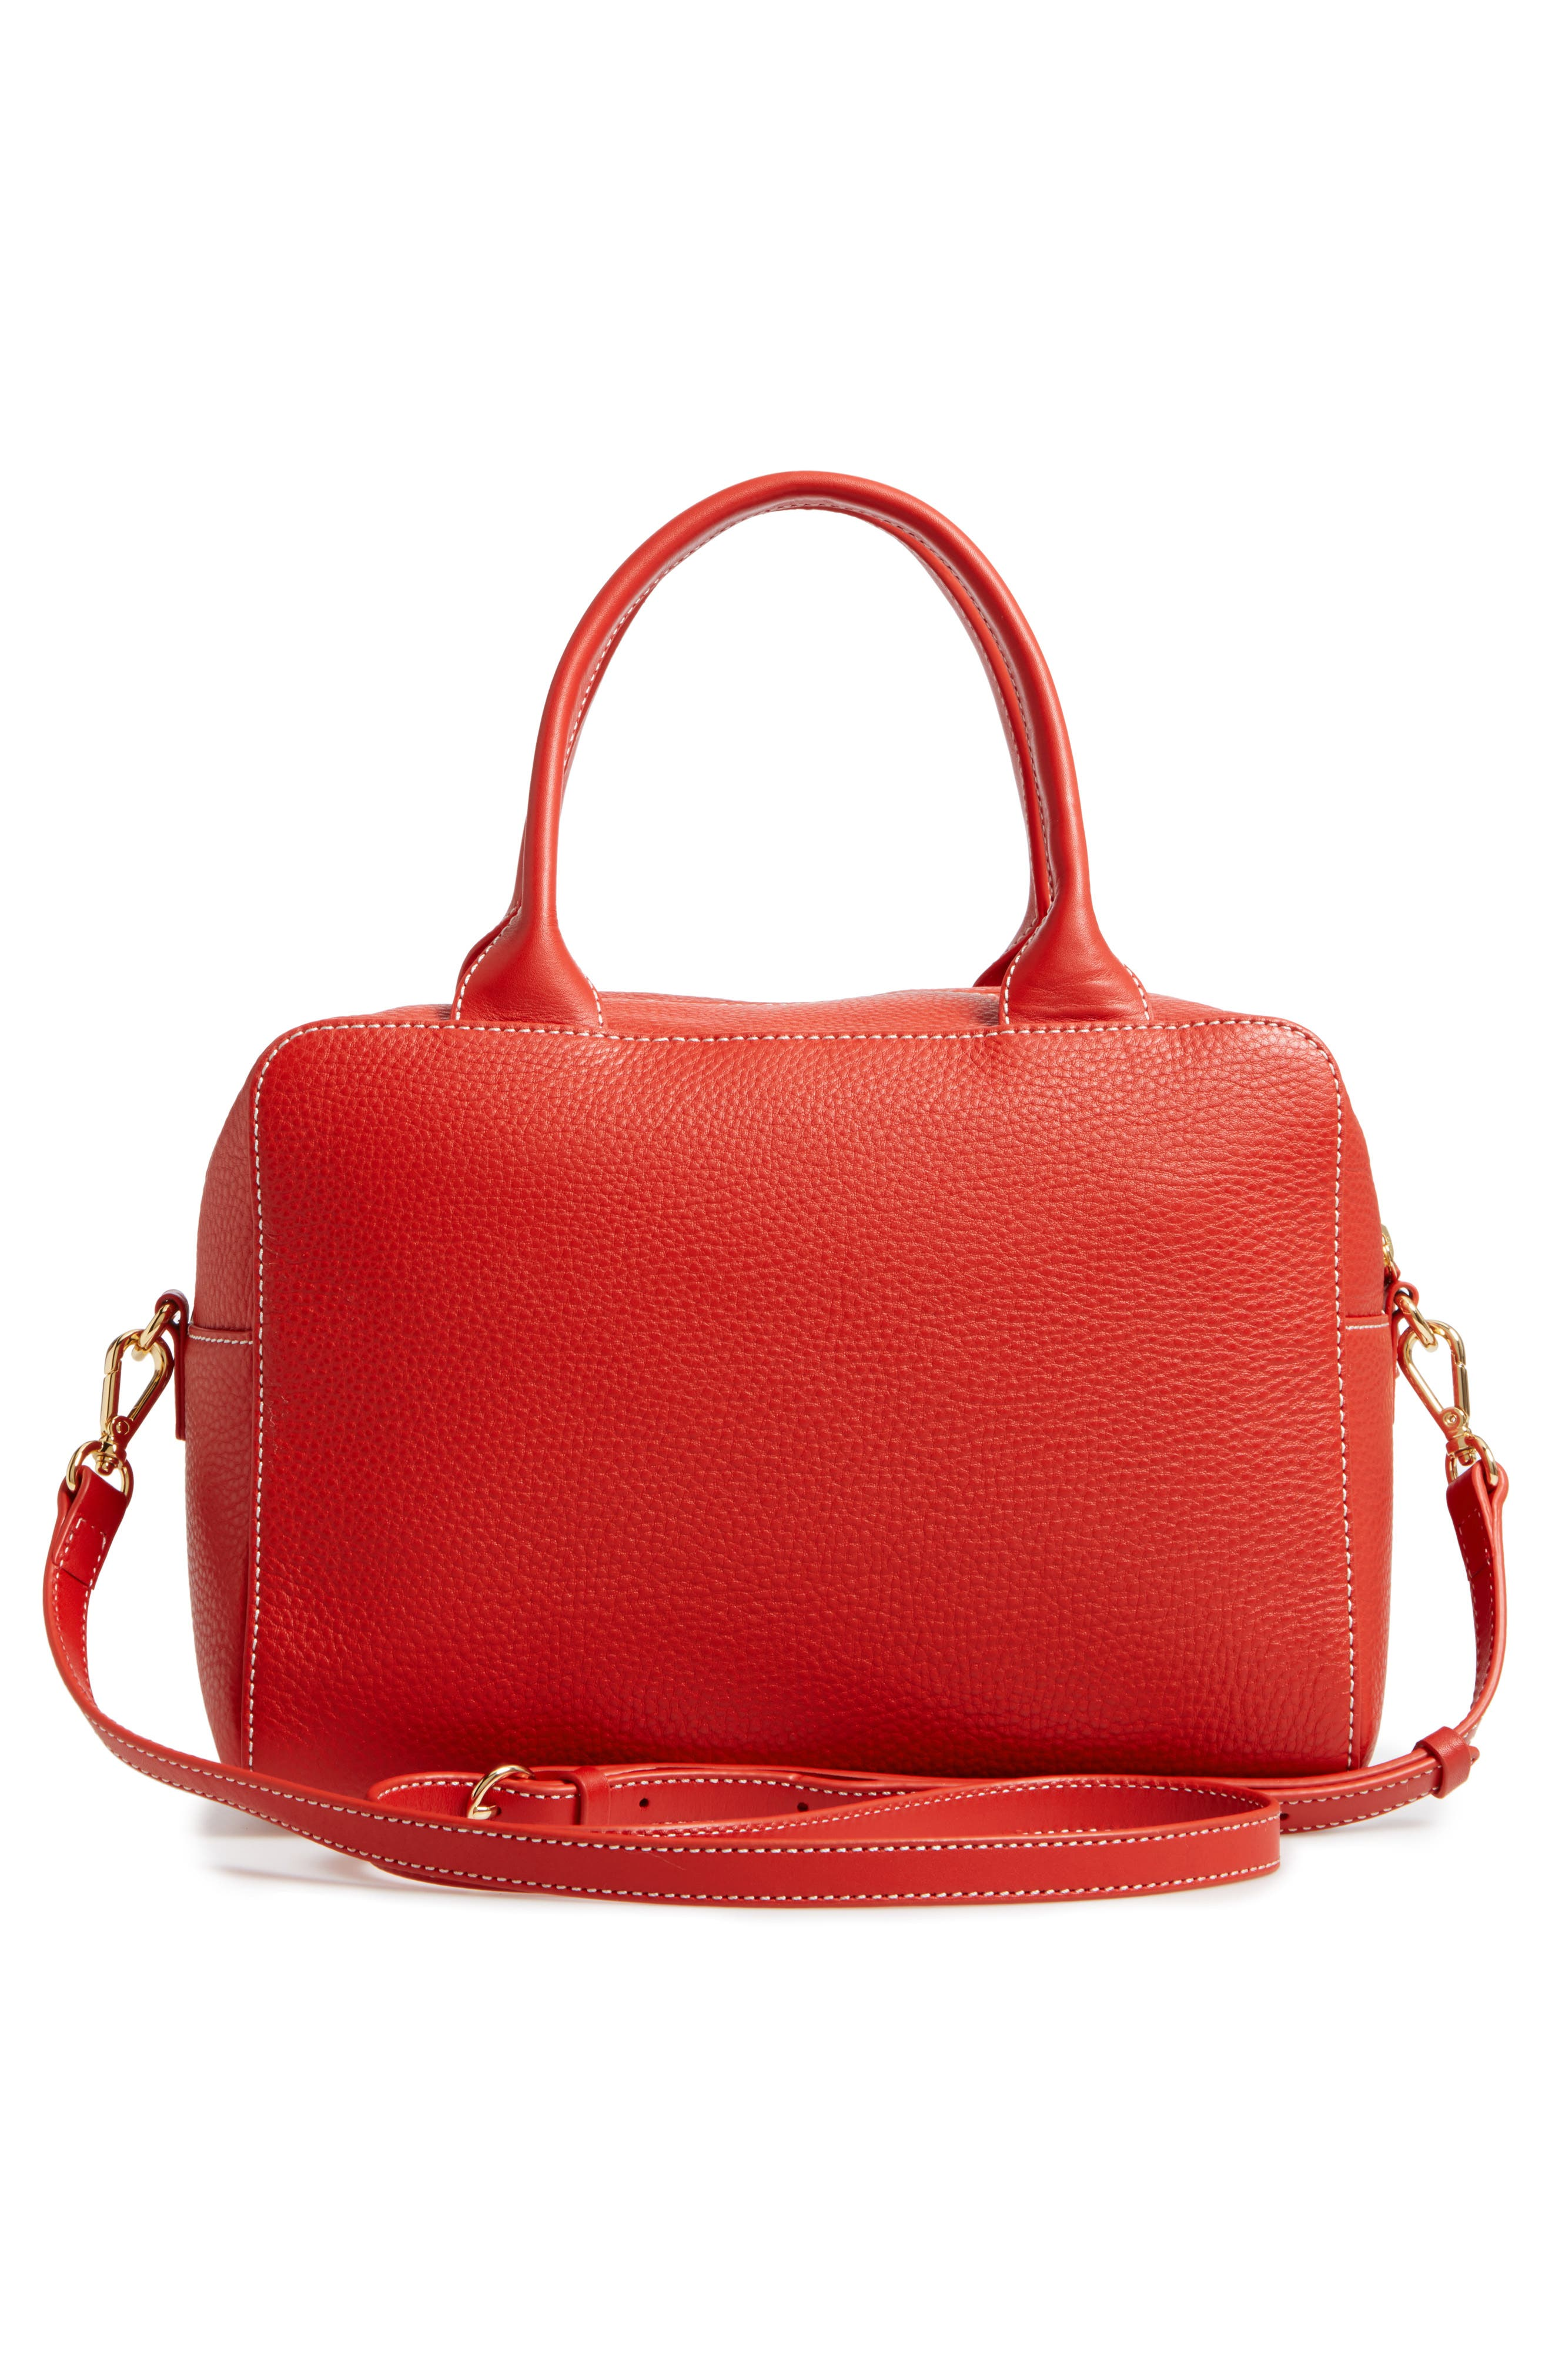 Medium Maddy Satchel,                             Alternate thumbnail 3, color,                             Coral